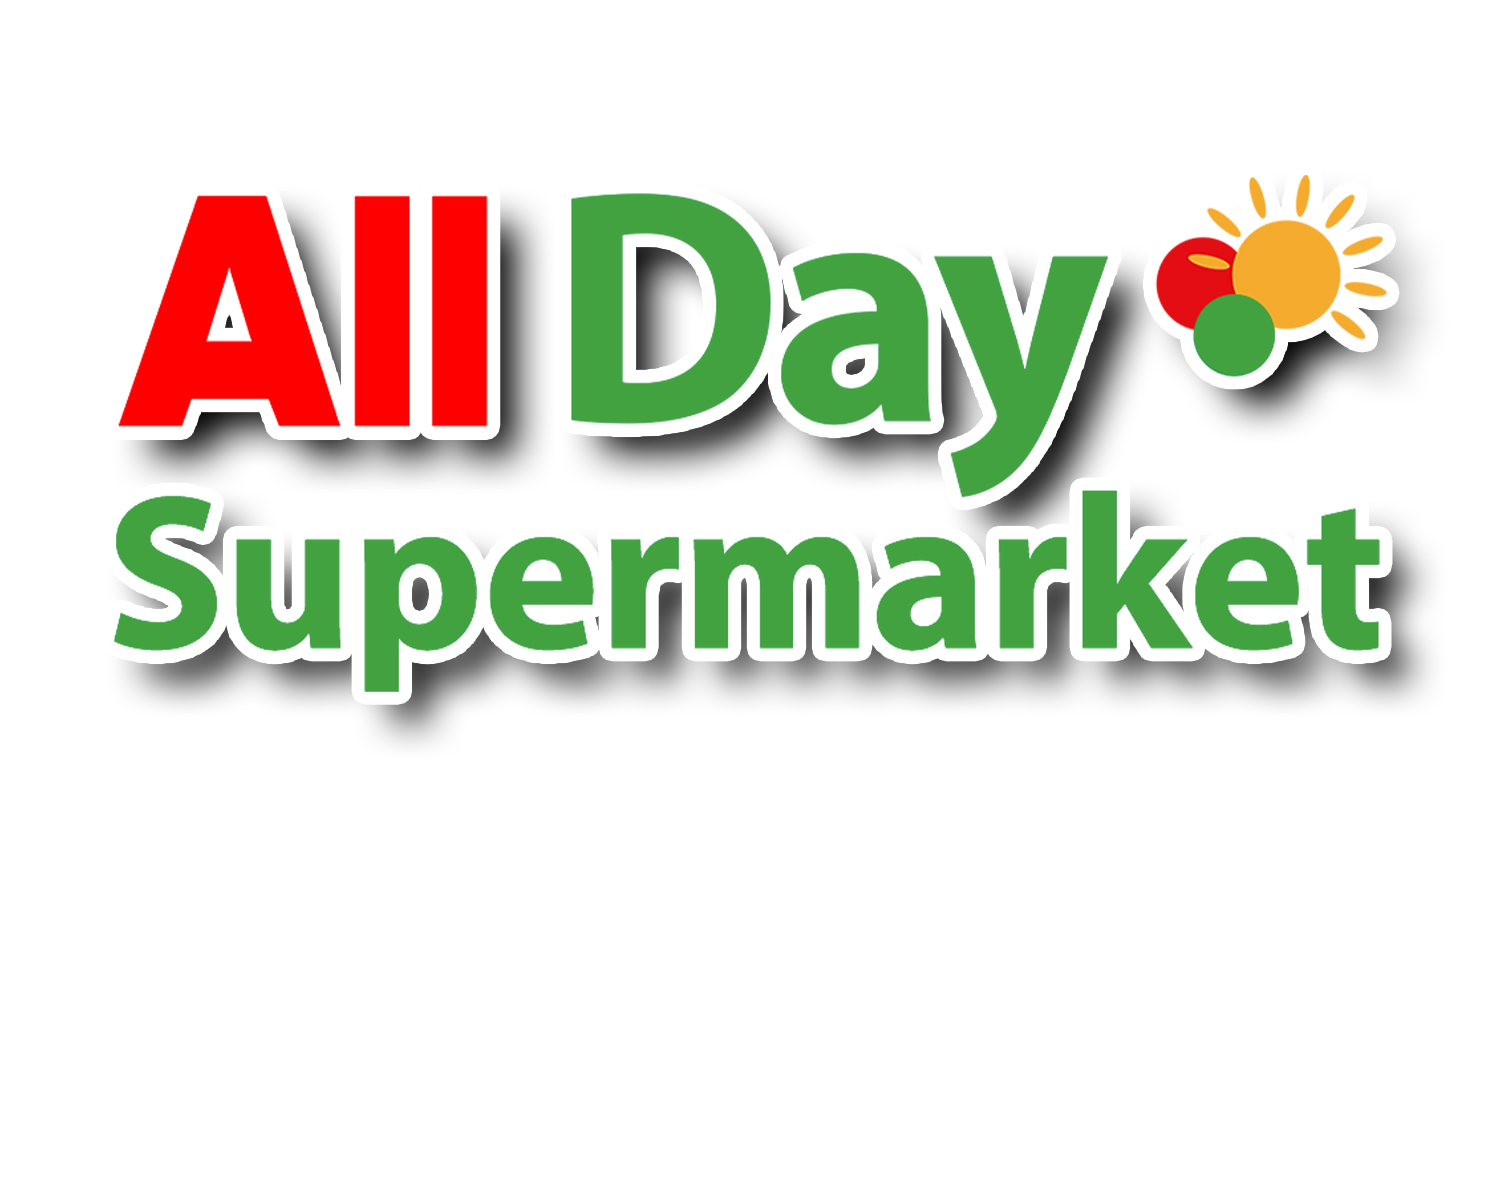 All Day Supermarket Logo